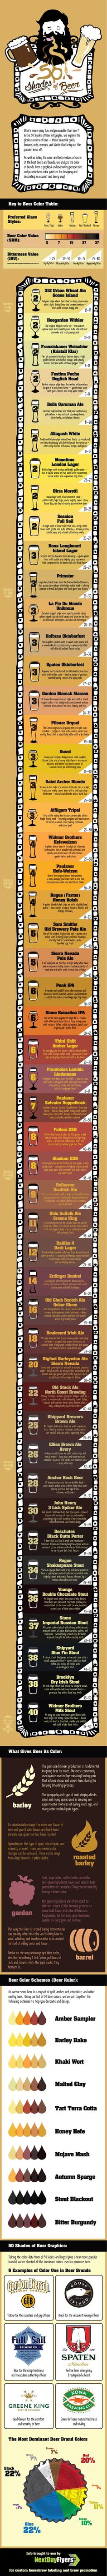 You like beer? You like its splendiferous shades of gold, amber, russet, sunset and so many more sexy colors? Well check out the most detailed study of beer color and flavor yet in this beer lovers and tasters guide to the beautiful brew http://blog.nextdayflyers.com/50-shades-of-beer-infographic/